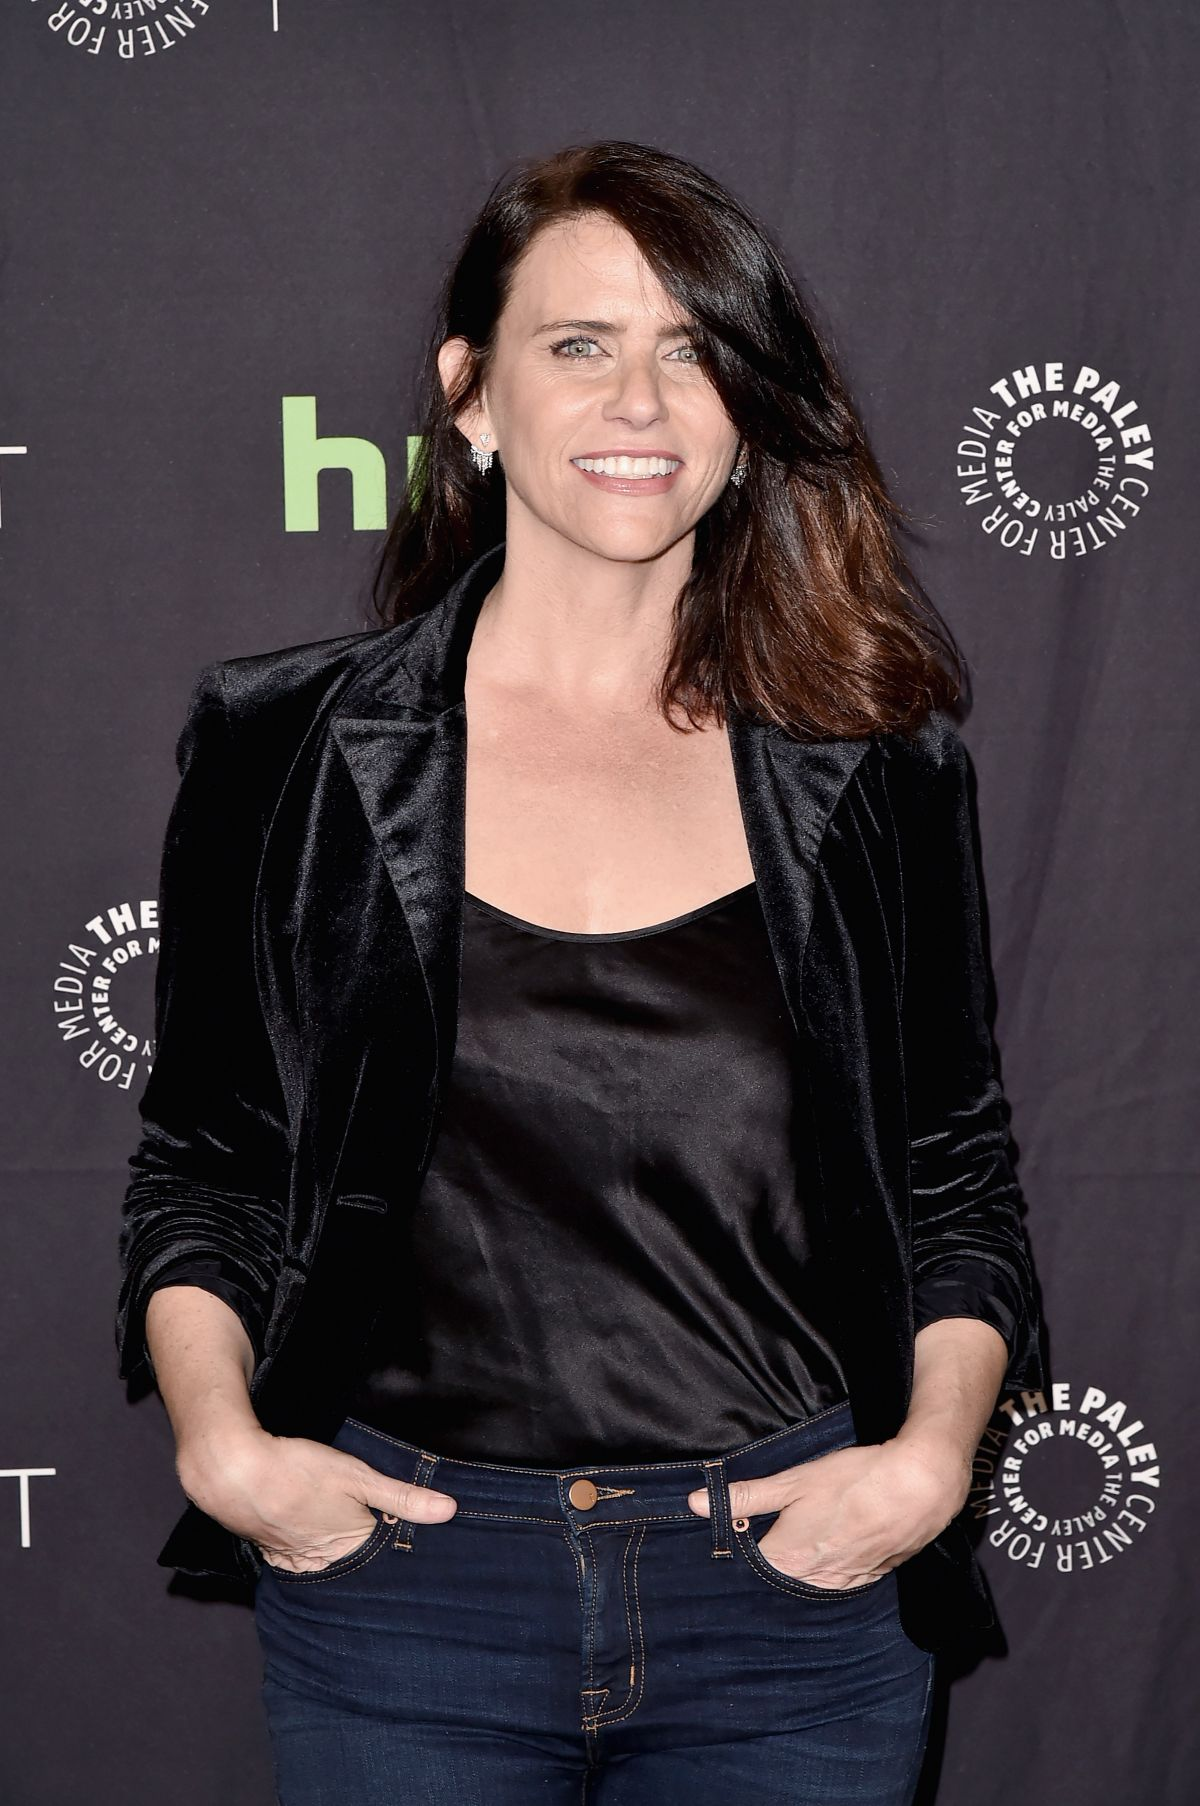 AMY LANDECKER at Paleyfest in Los Angeles 03/22/2017